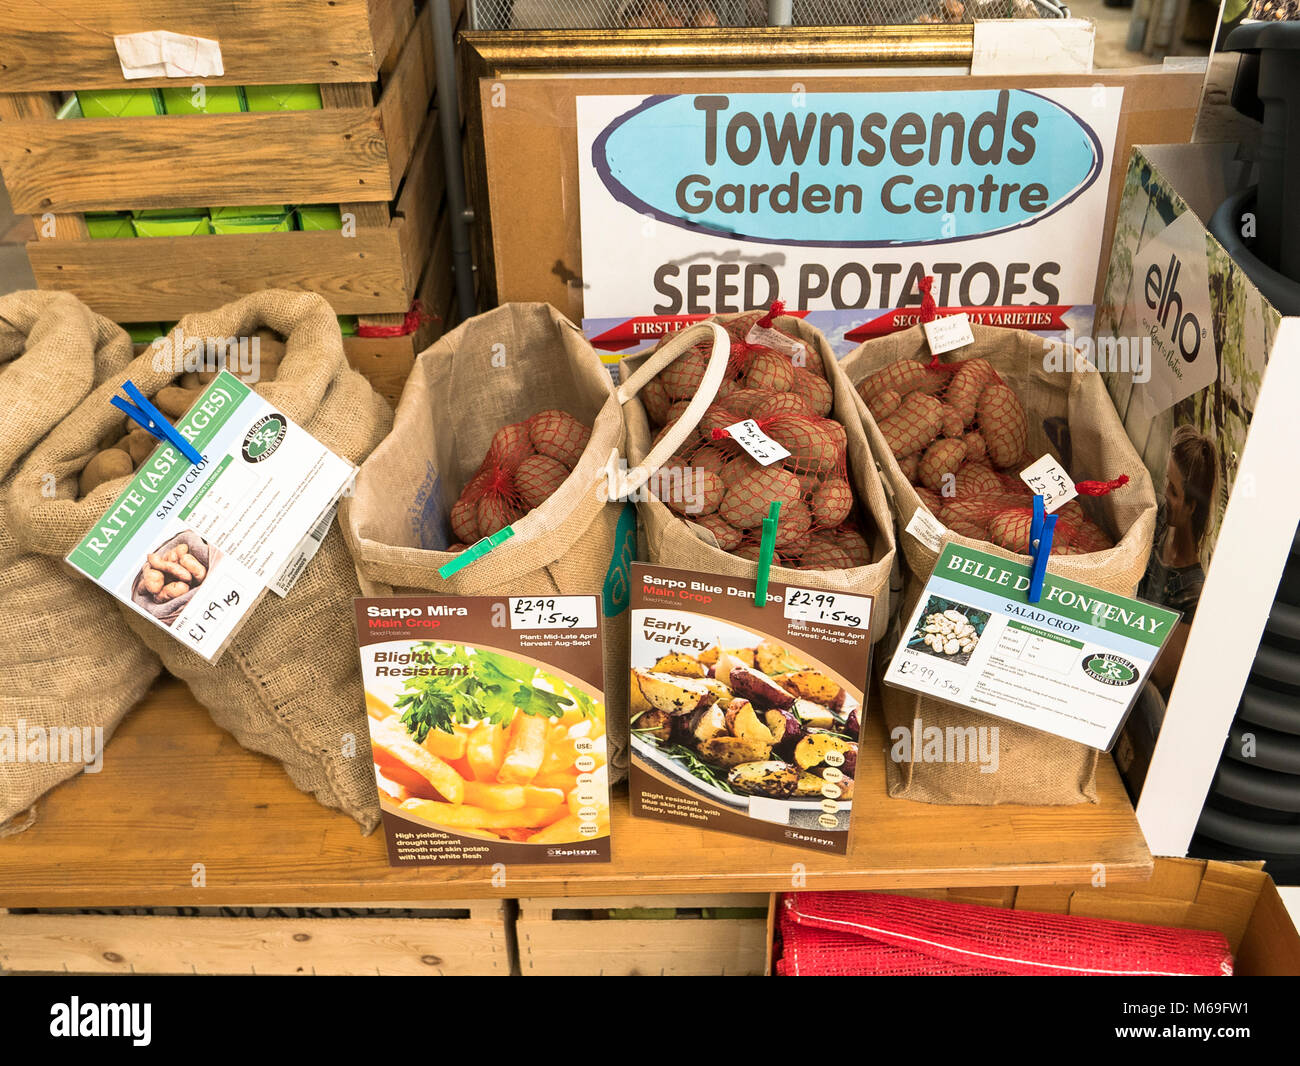 New seed potatoes displayed in an English garden centre in February Stock Photo